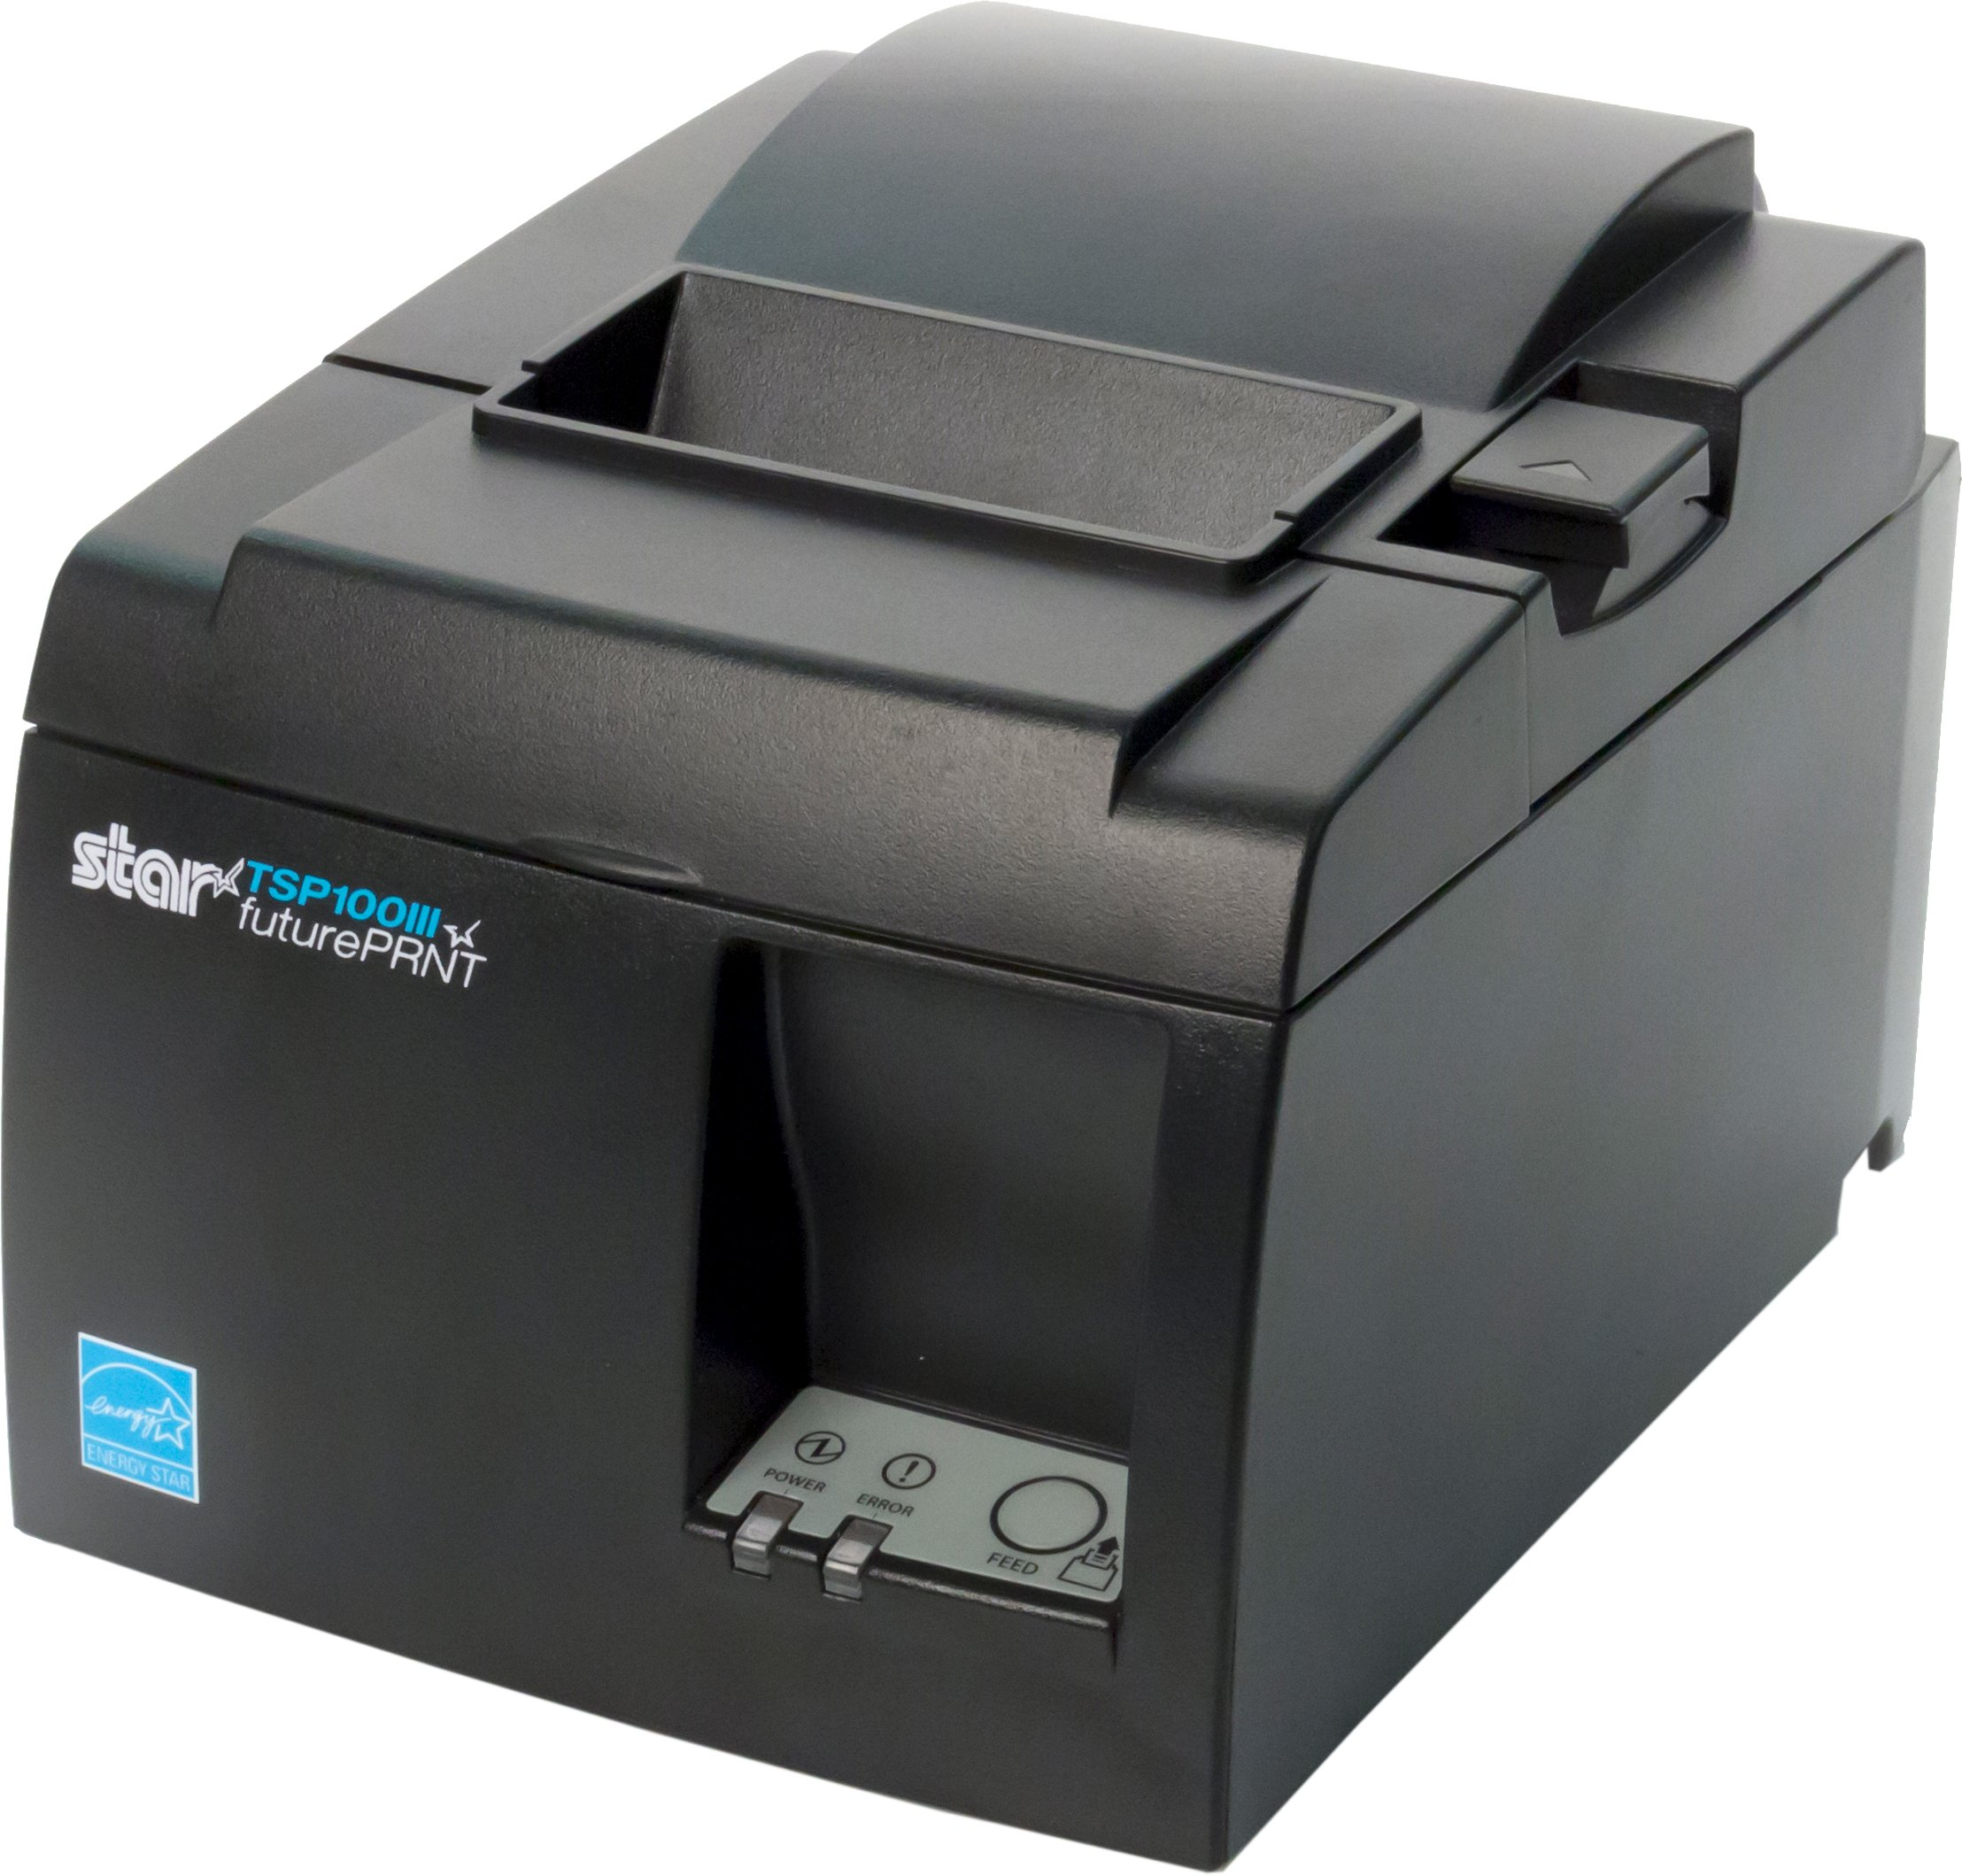 Star Micronics TSP143IIIU USB Thermal Receipt Printer with Device and Mfi USB Ports, Auto-cutter, and Internal Power Supply - Gray by Star Micronics (Image #1)